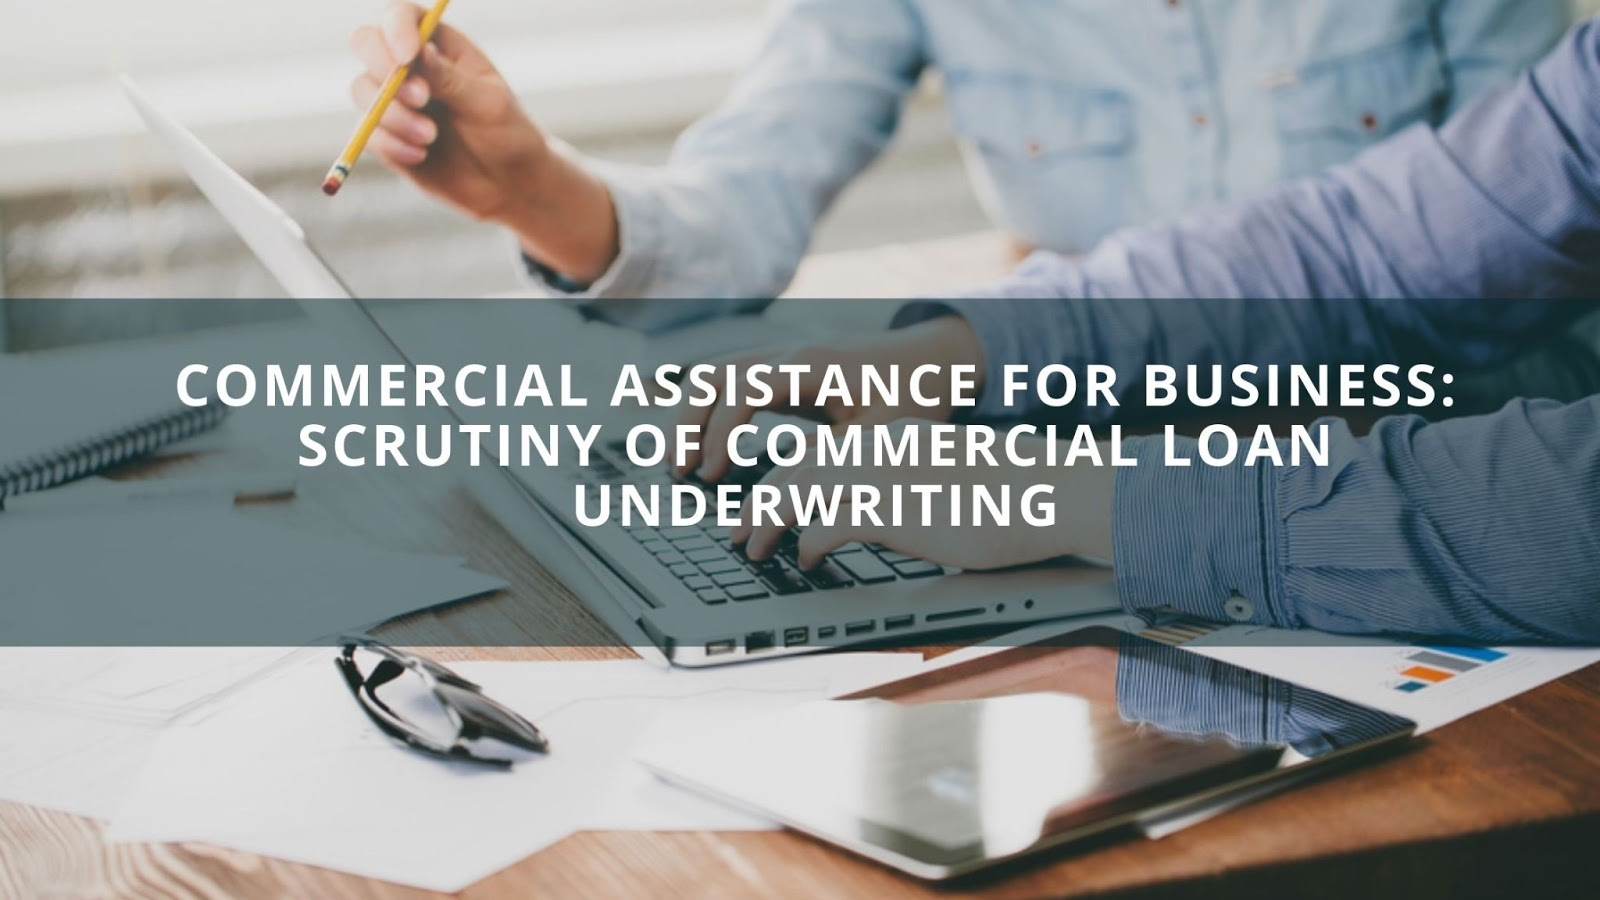 Commercial Assistance For Business: Scrutiny Of Commercial Loan Underwriting